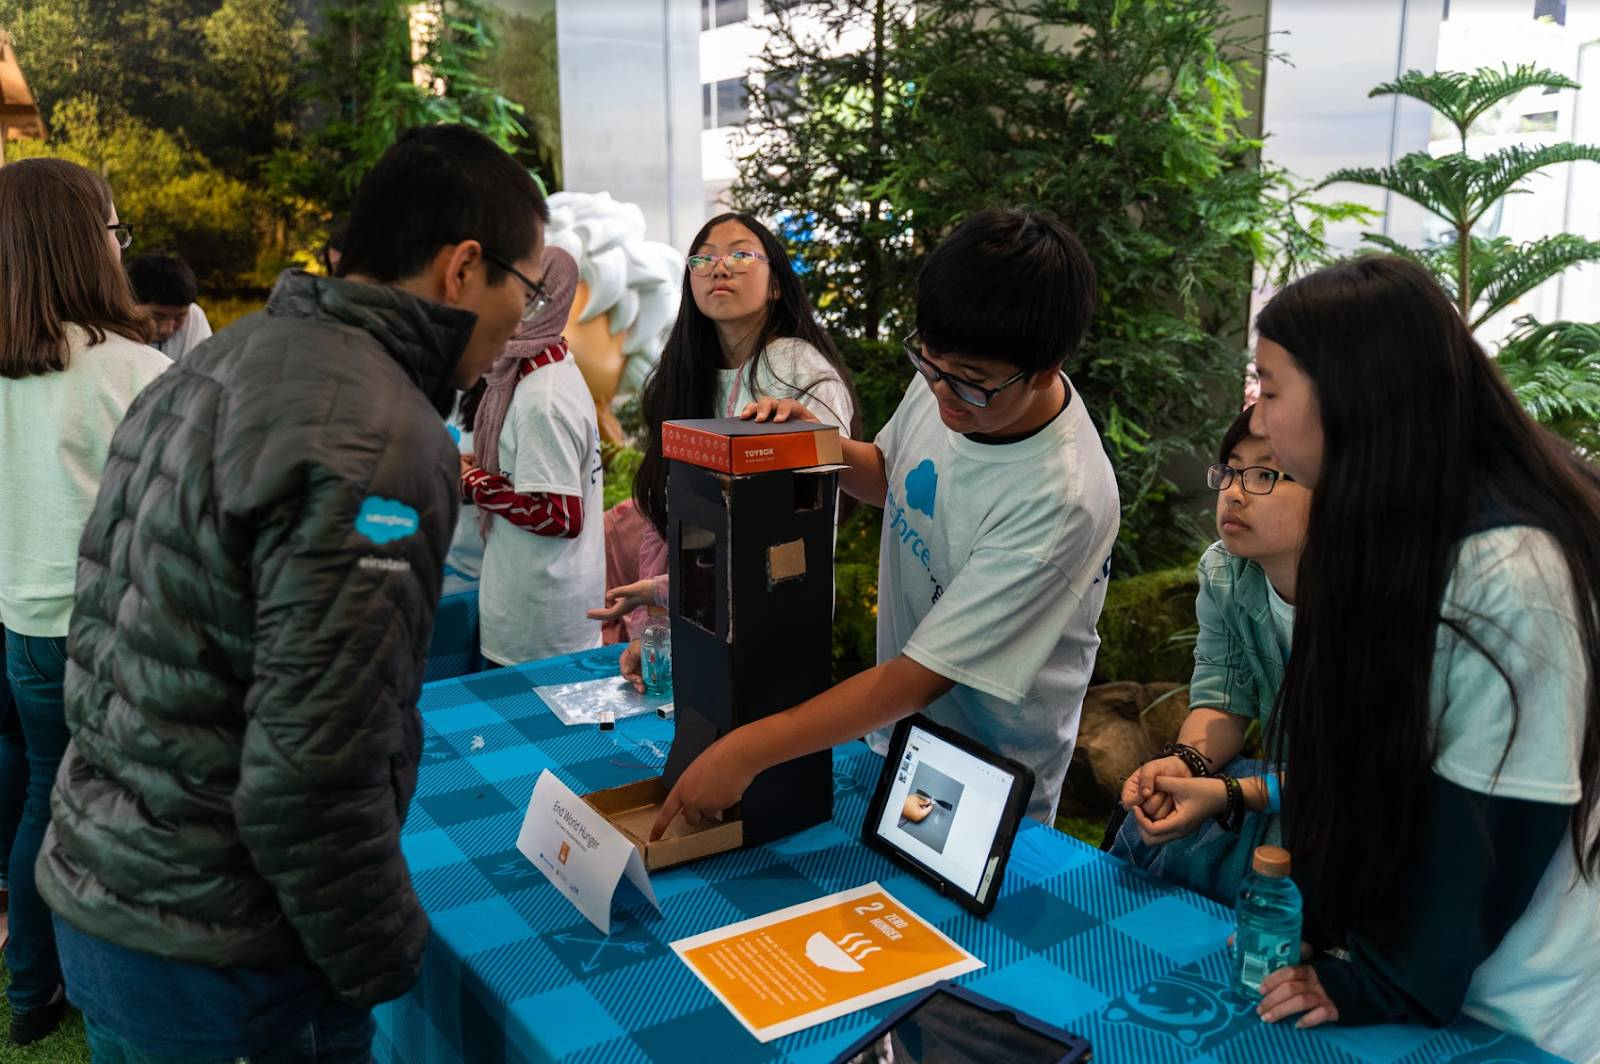 Students showcasing their prototype at Salesforce's San Francisco Bay Area Maker Faire